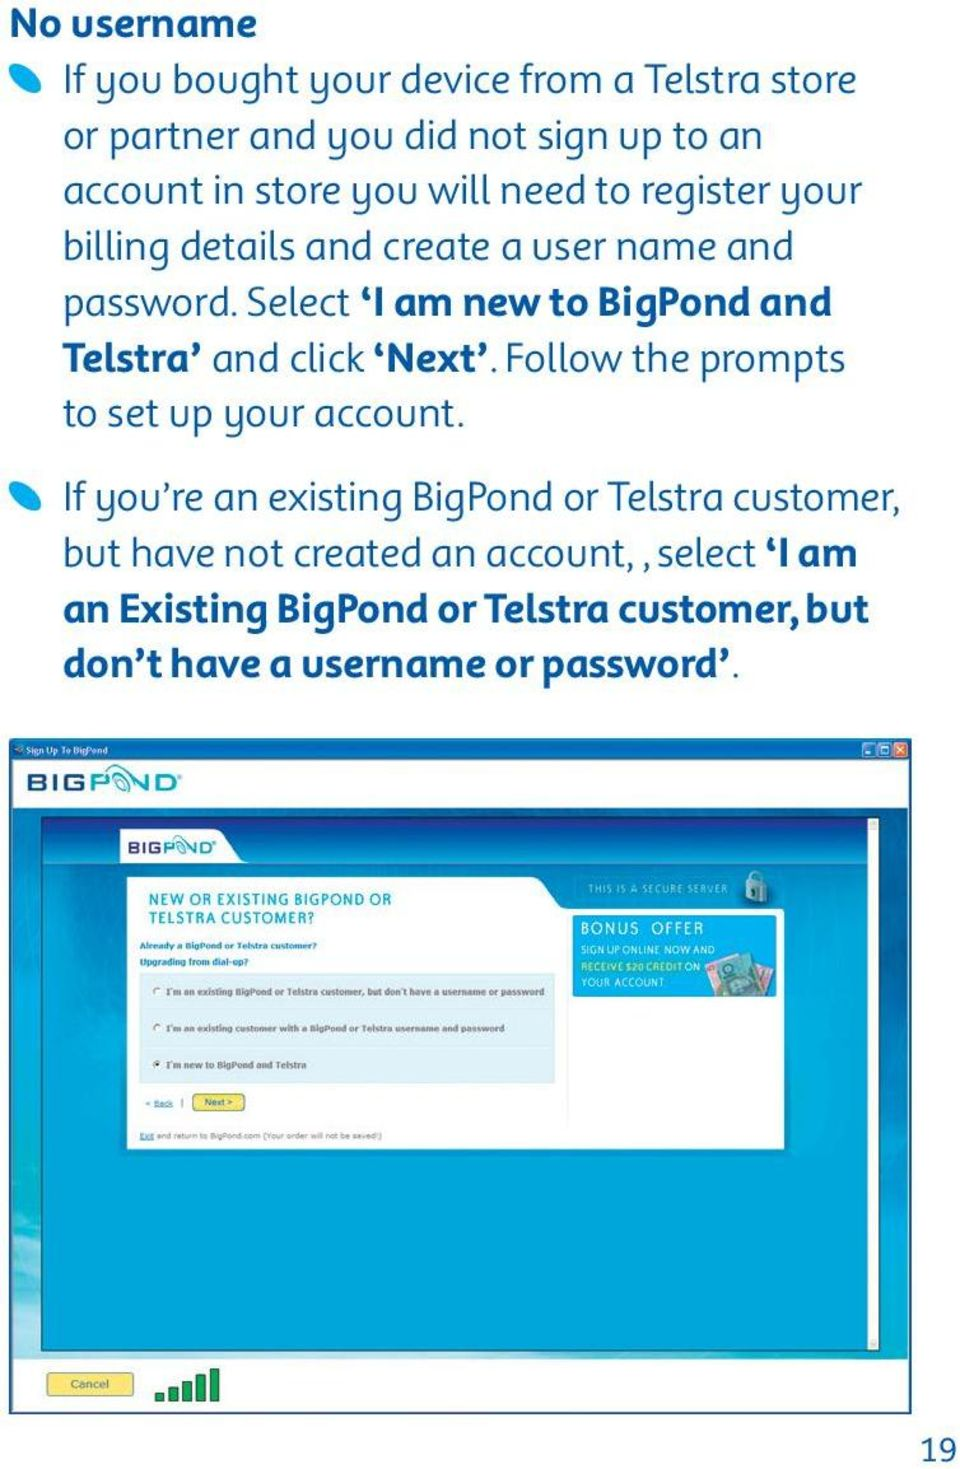 Select I am new to BigPond and Telstra and click Next. Follow the prompts to set up your account.